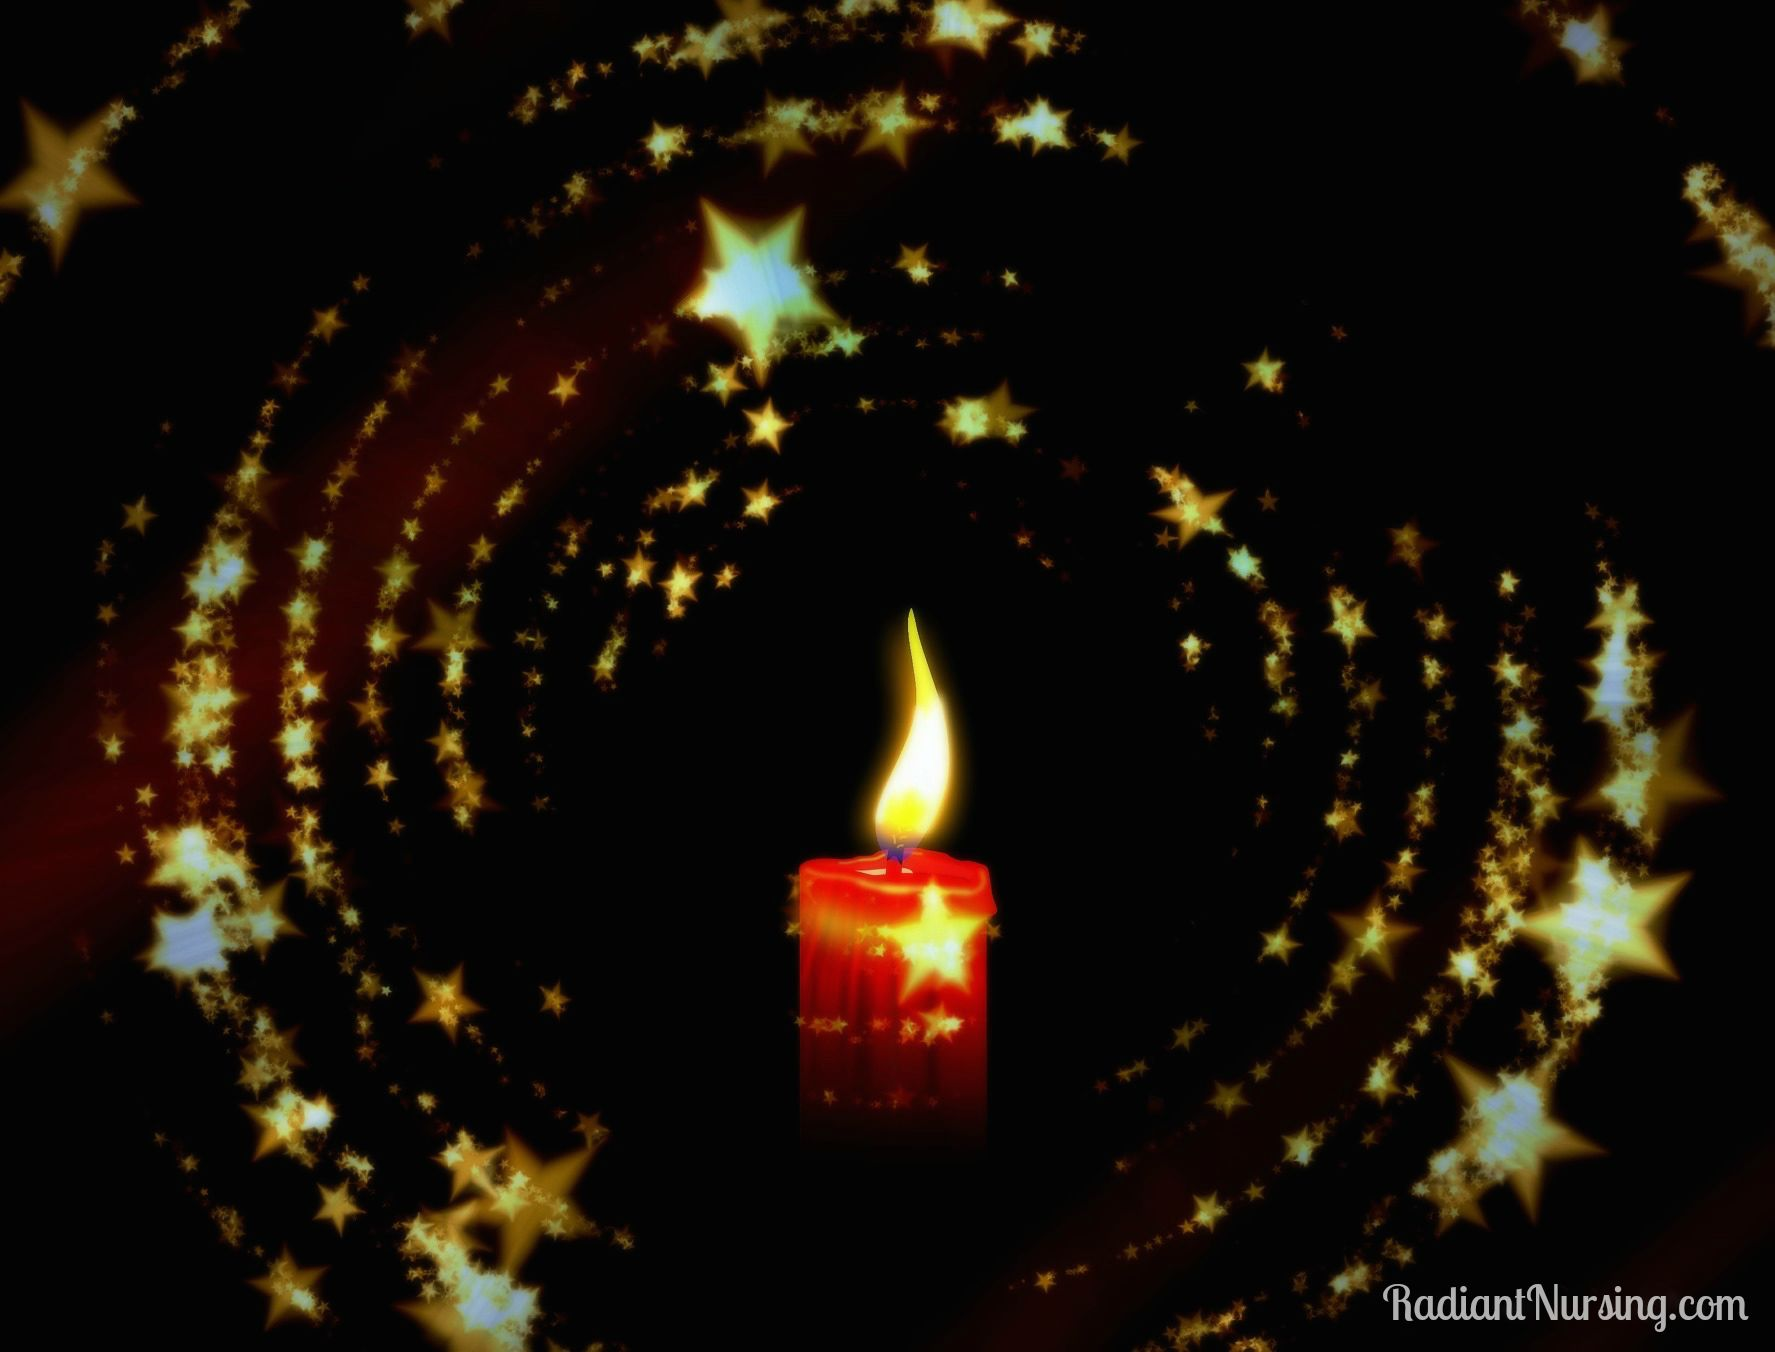 A candle in the dark can still light the way.